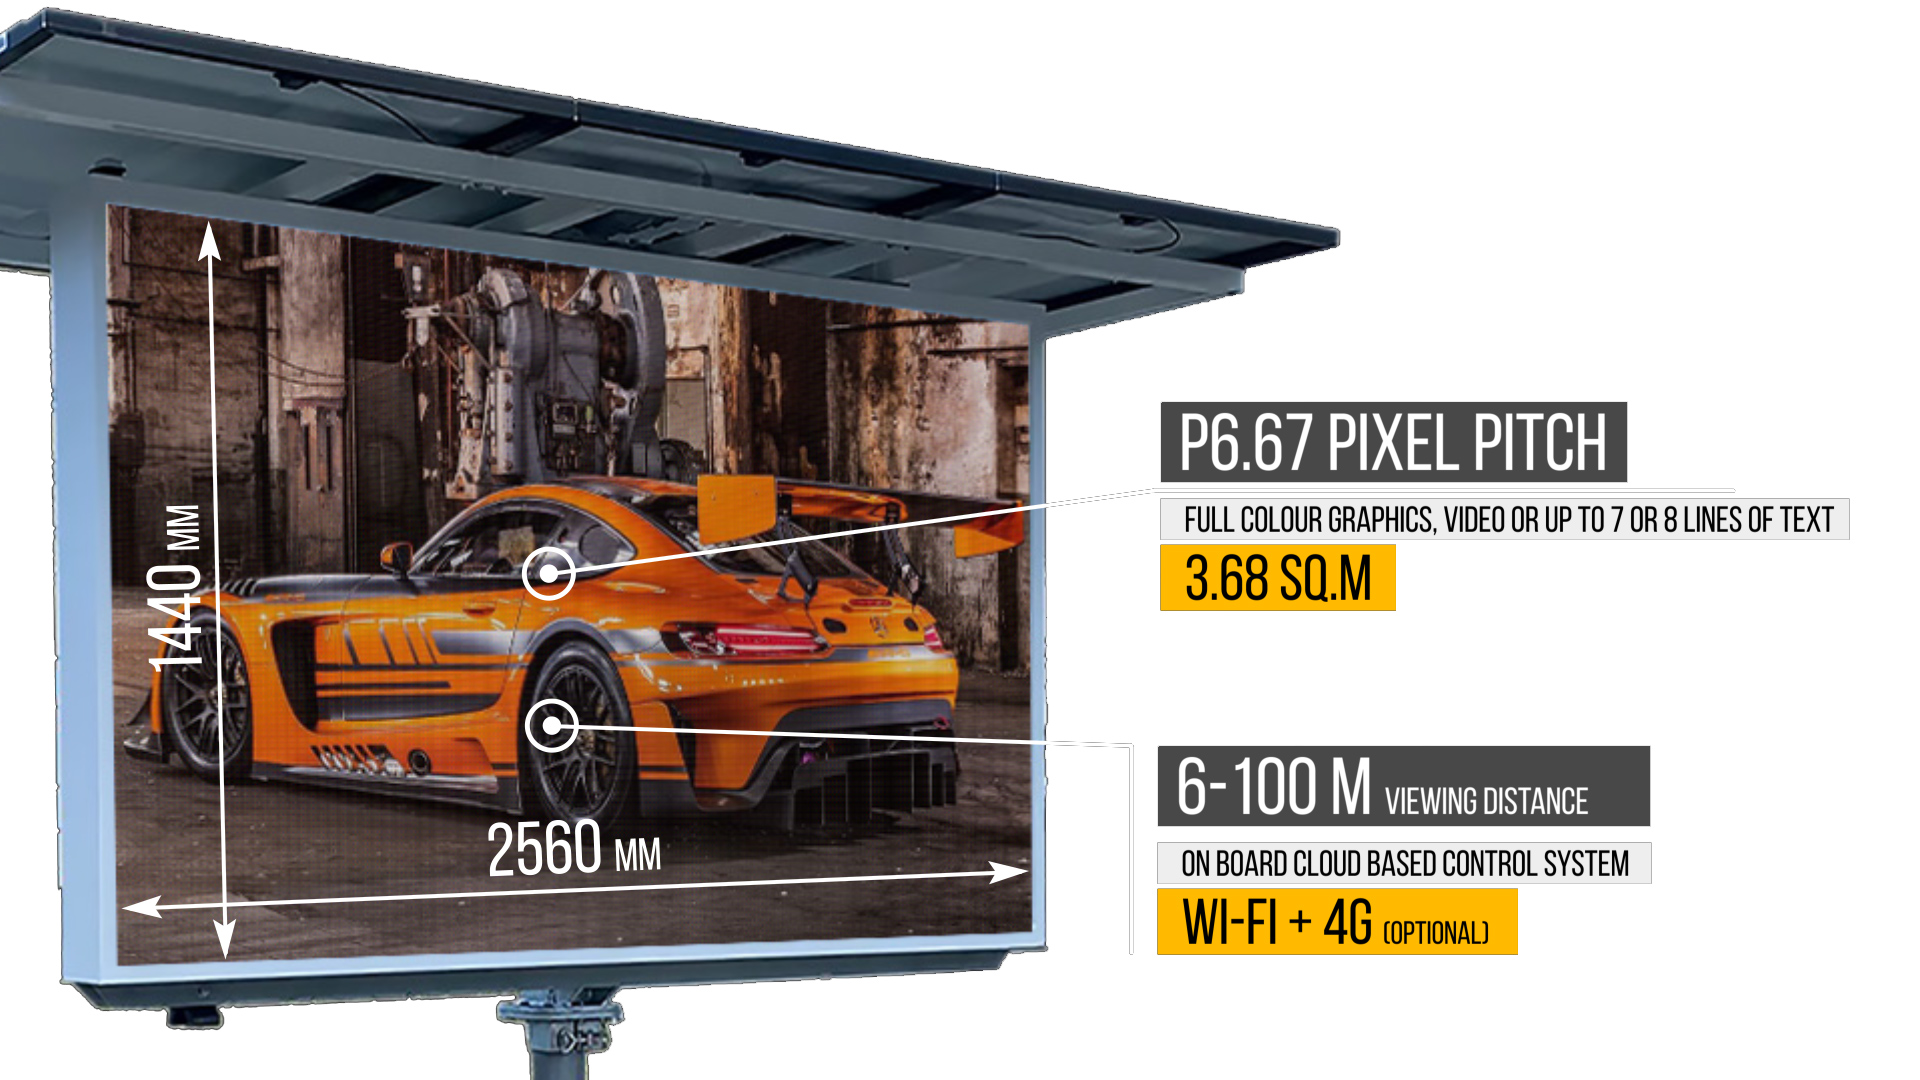 Full-colour graphics, video, or up to 7 or 8 lines of text on a single screen, can be displayed perfectly on this P10 pixel pitch screen.